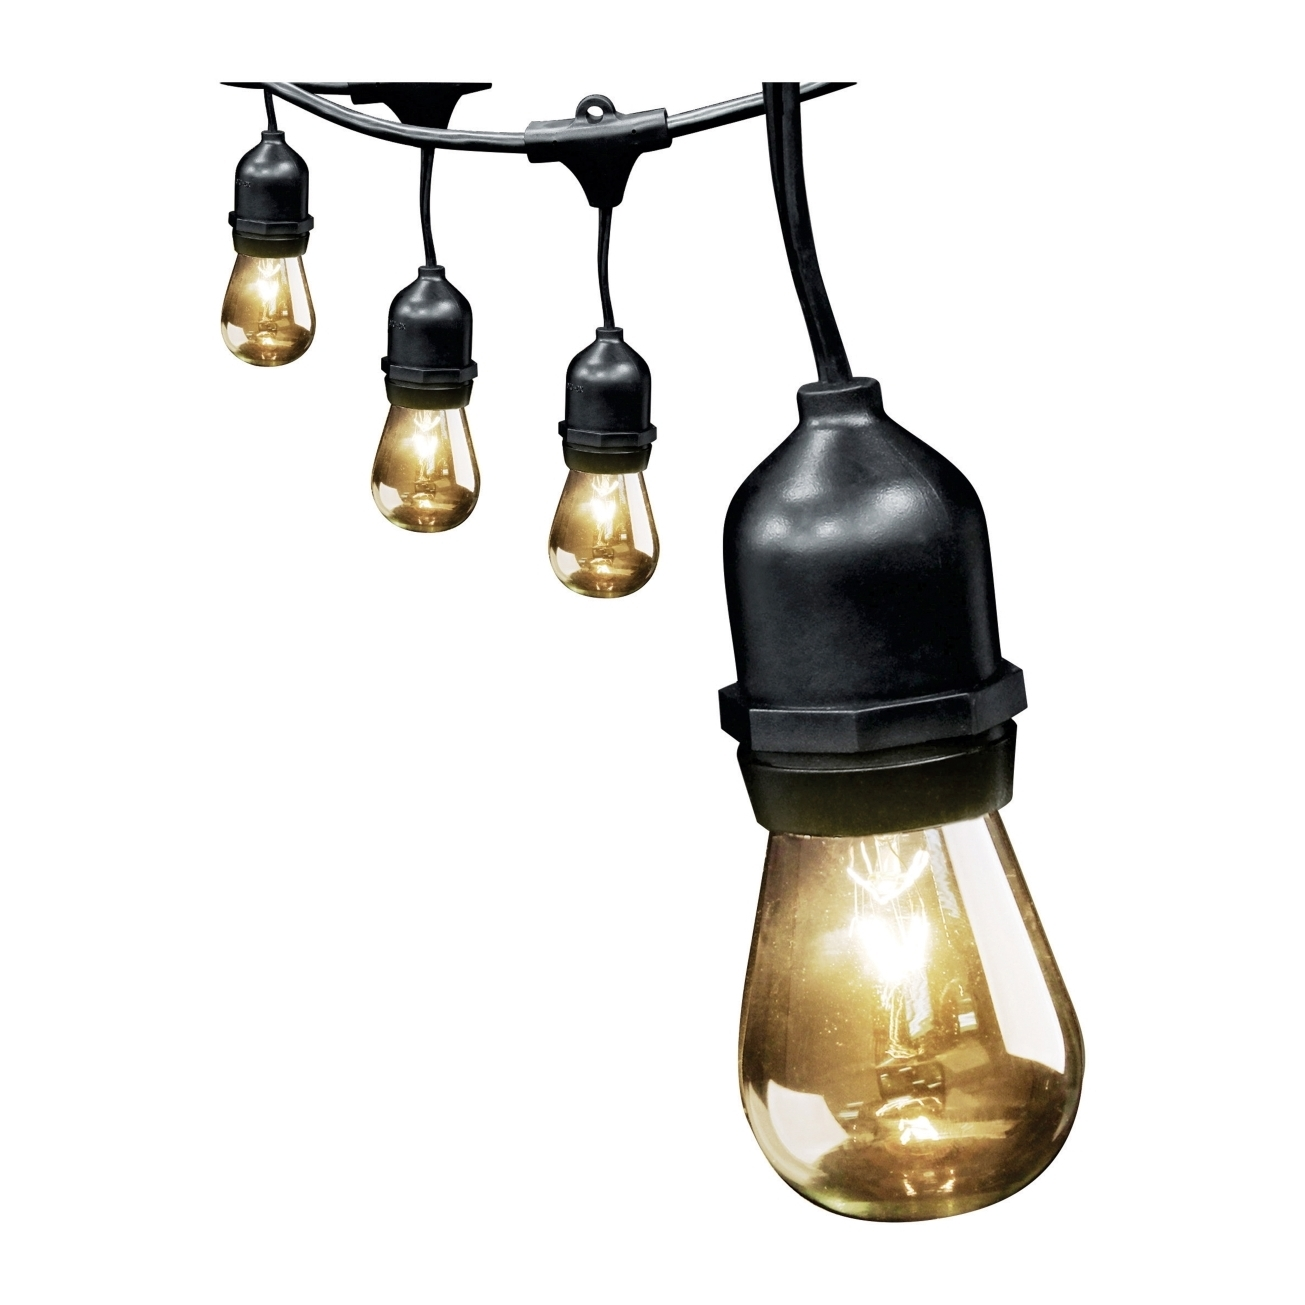 Outdoor Light Fixtures At Ace Hardware Pertaining To Well Known 12 Volt Outdoor Hanging Lights (View 12 of 20)